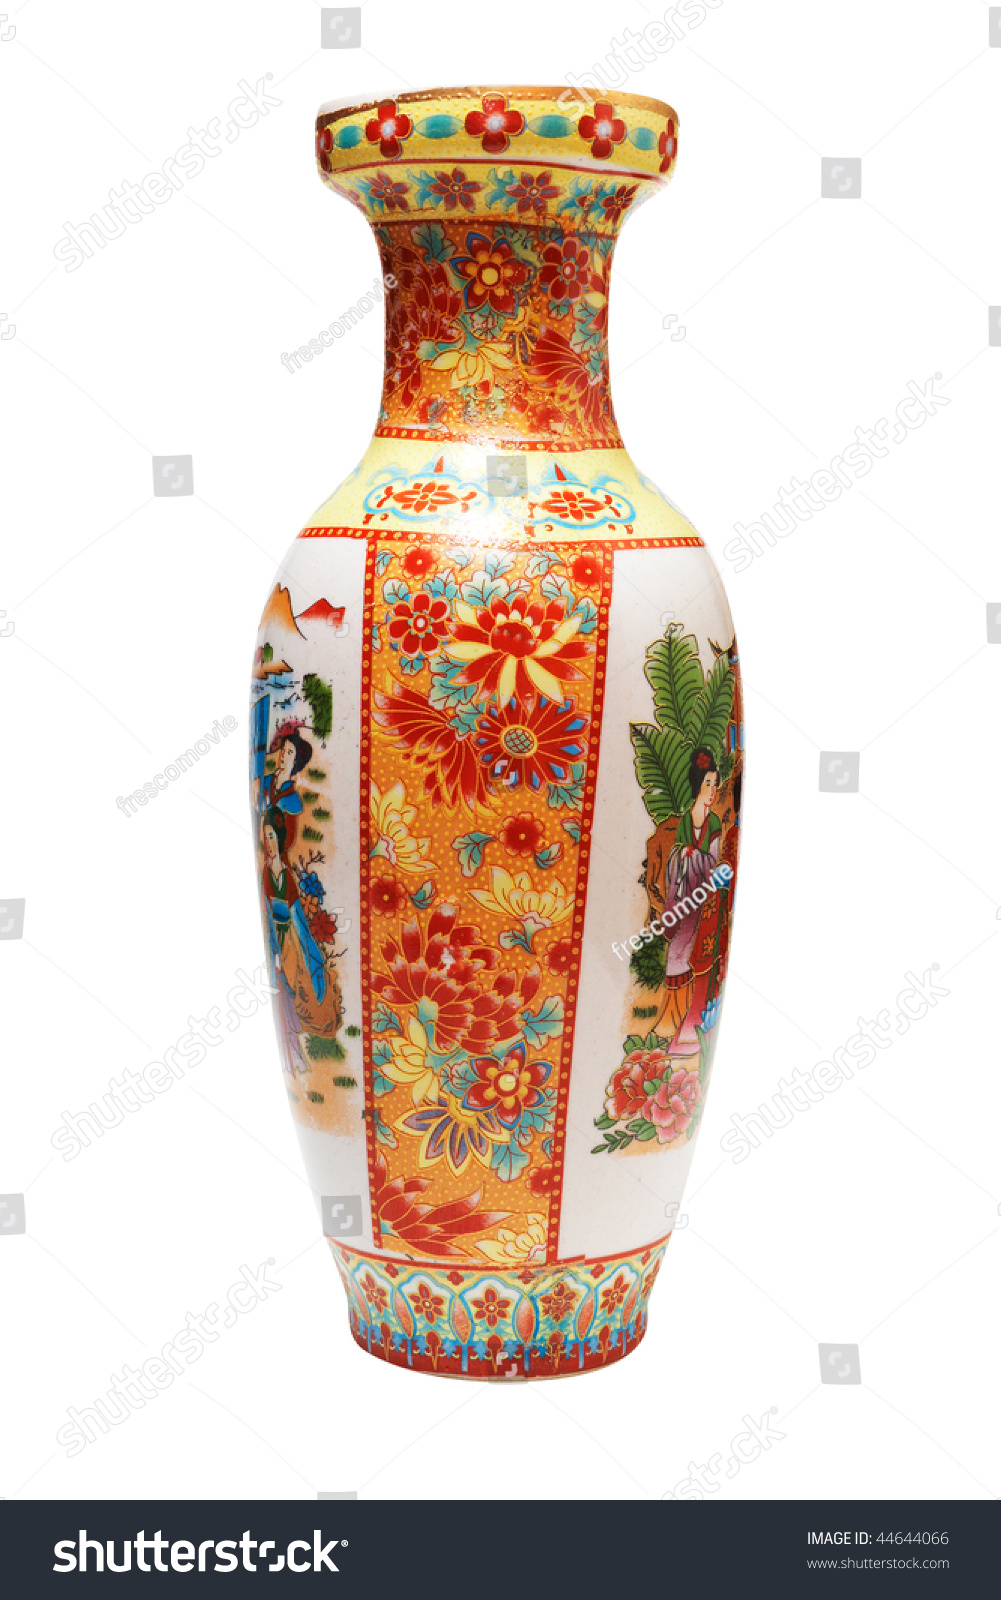 Antique japanese vase isolated on white stock photo 44644066 antique japanese vase isolated on white with clipping path reviewsmspy